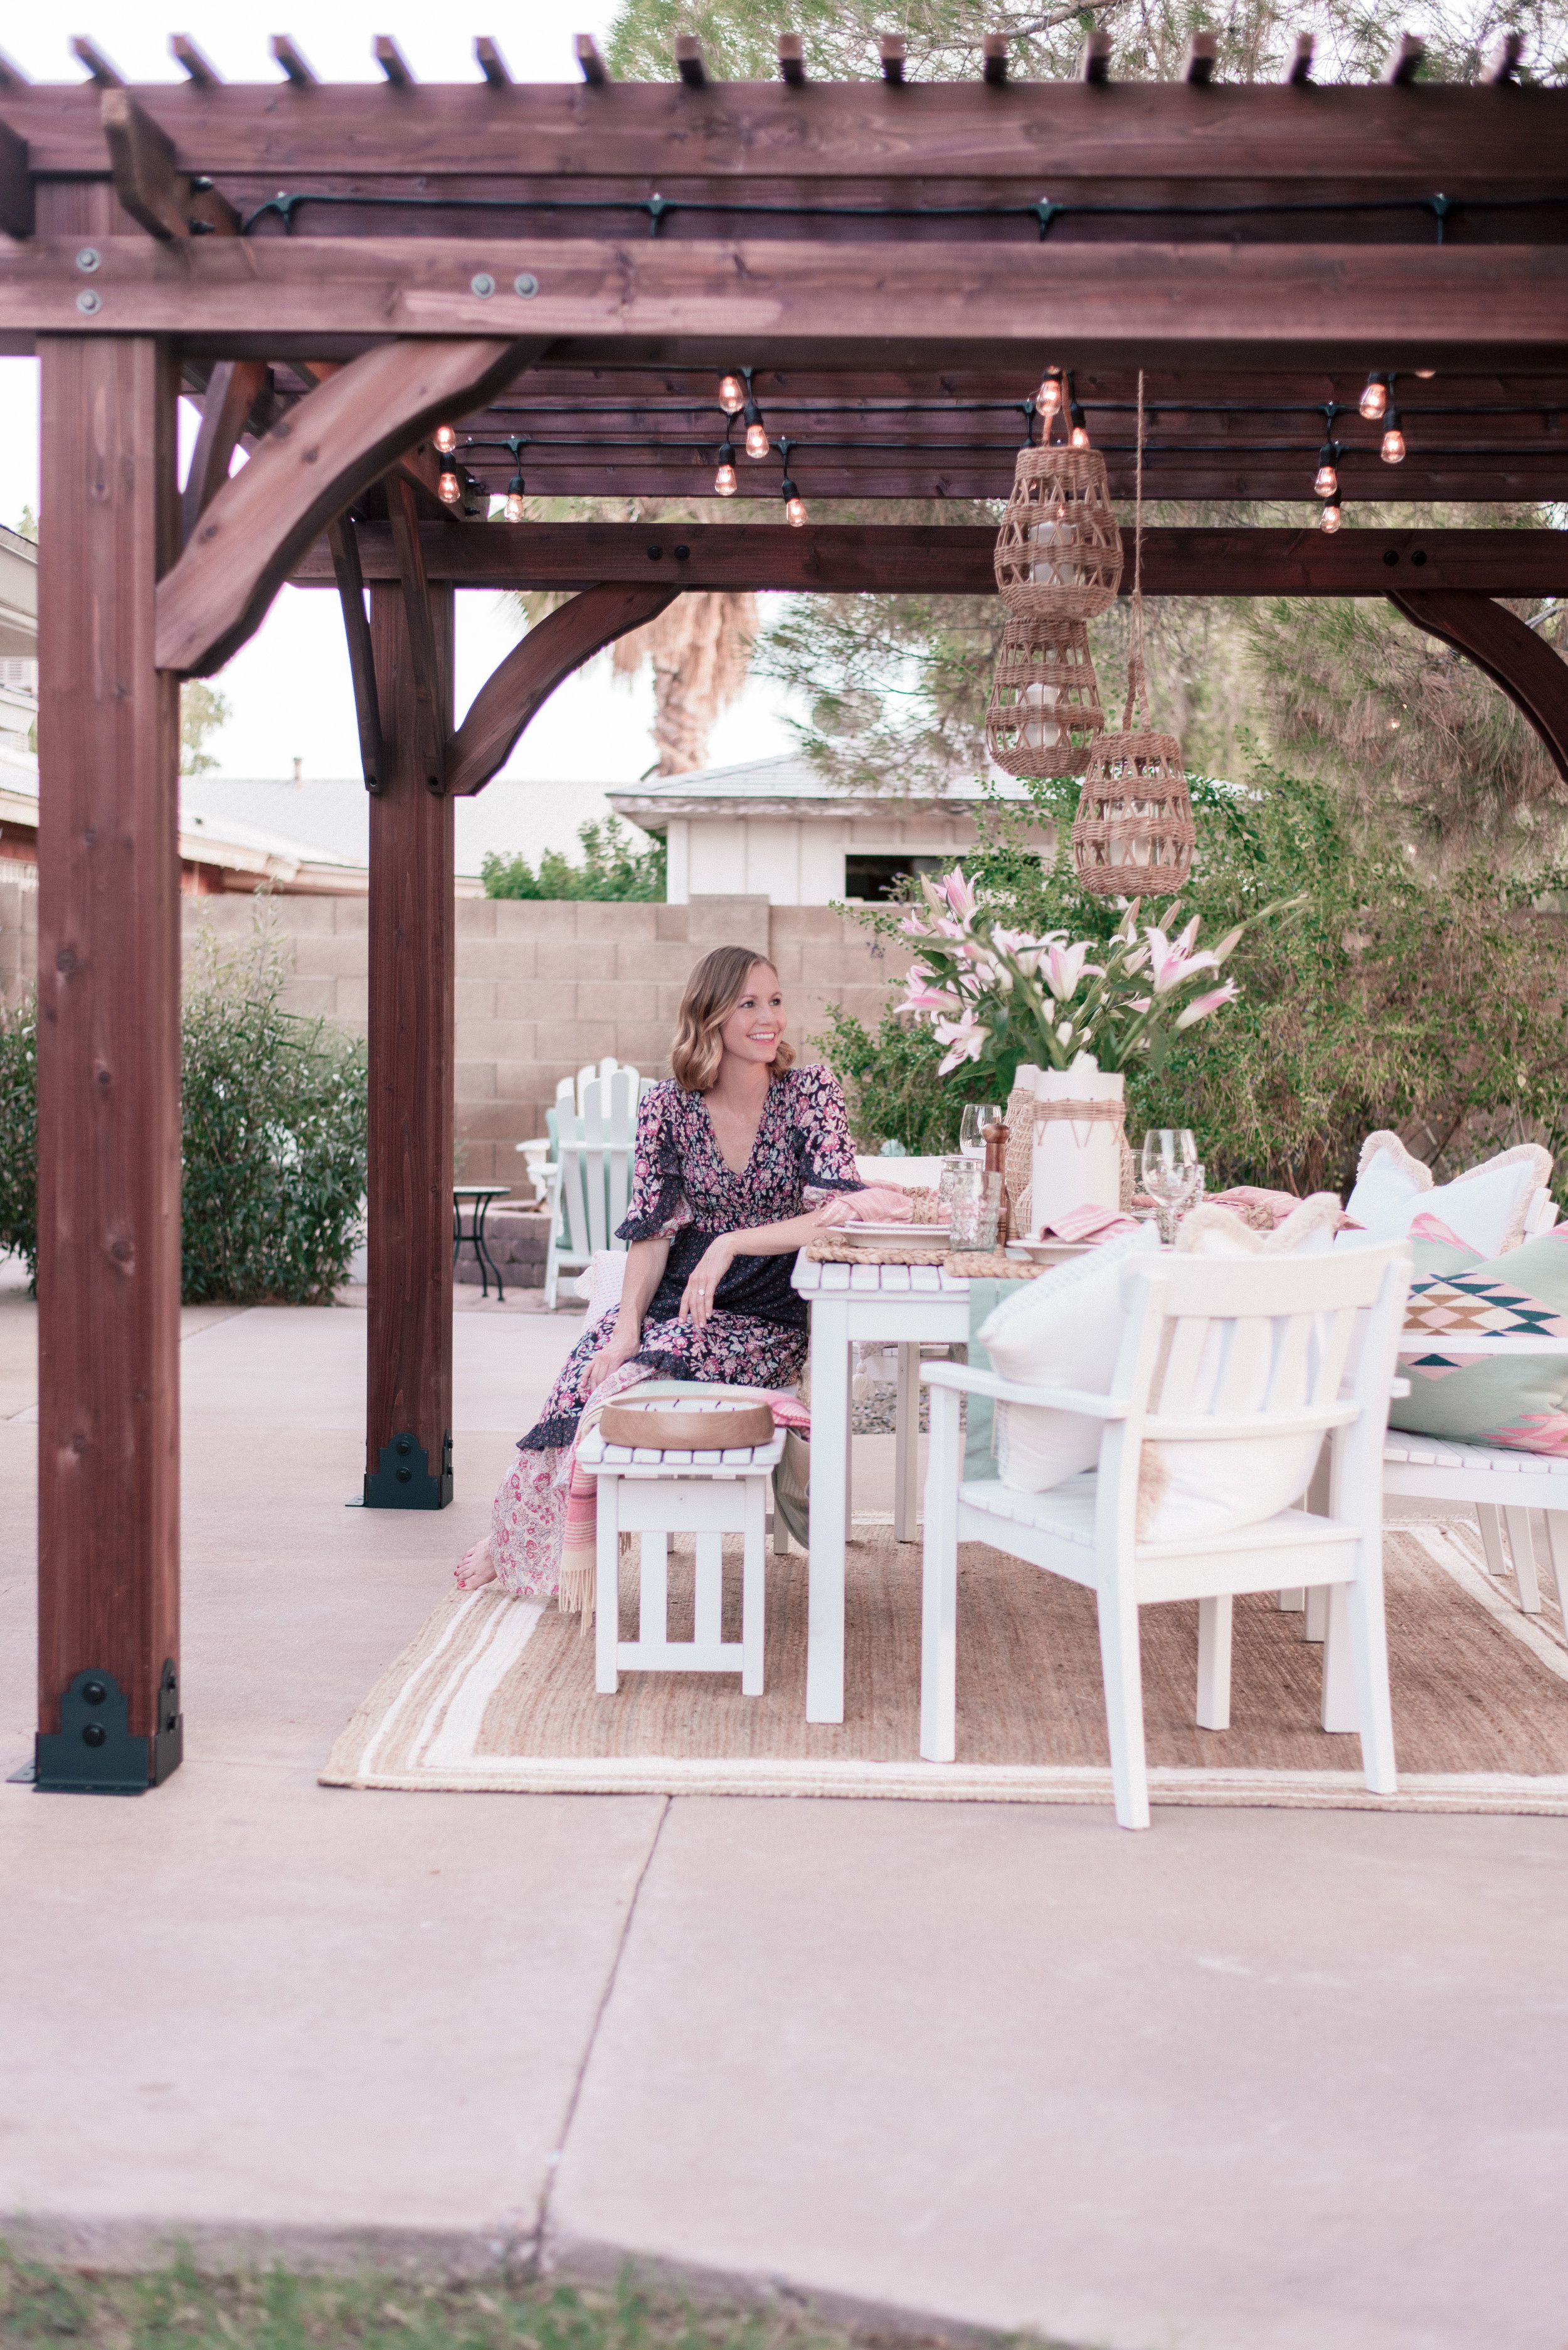 backyard patio pergola project with Home Depot and Leisure Time Product featured by top US lifestyle blog, Love + Specs: image of a woman under a wood backyard patio pergola